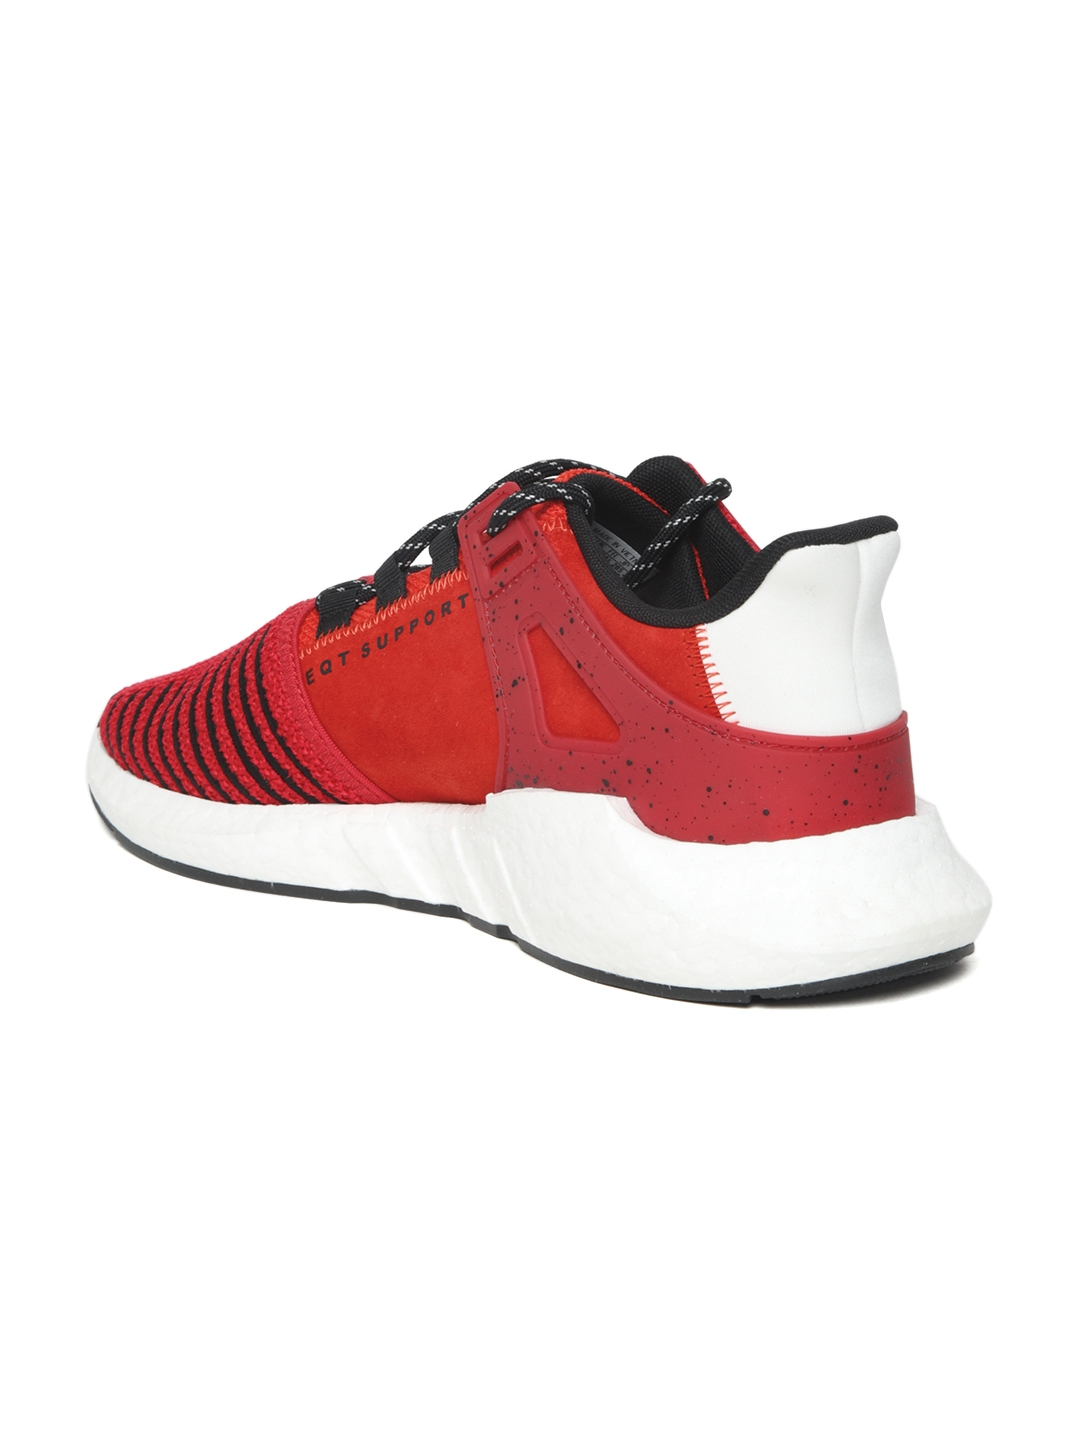 free shipping c94cb dd957 ADIDAS Originals Men Red EQT Support 9317 Woven Design Sneakers